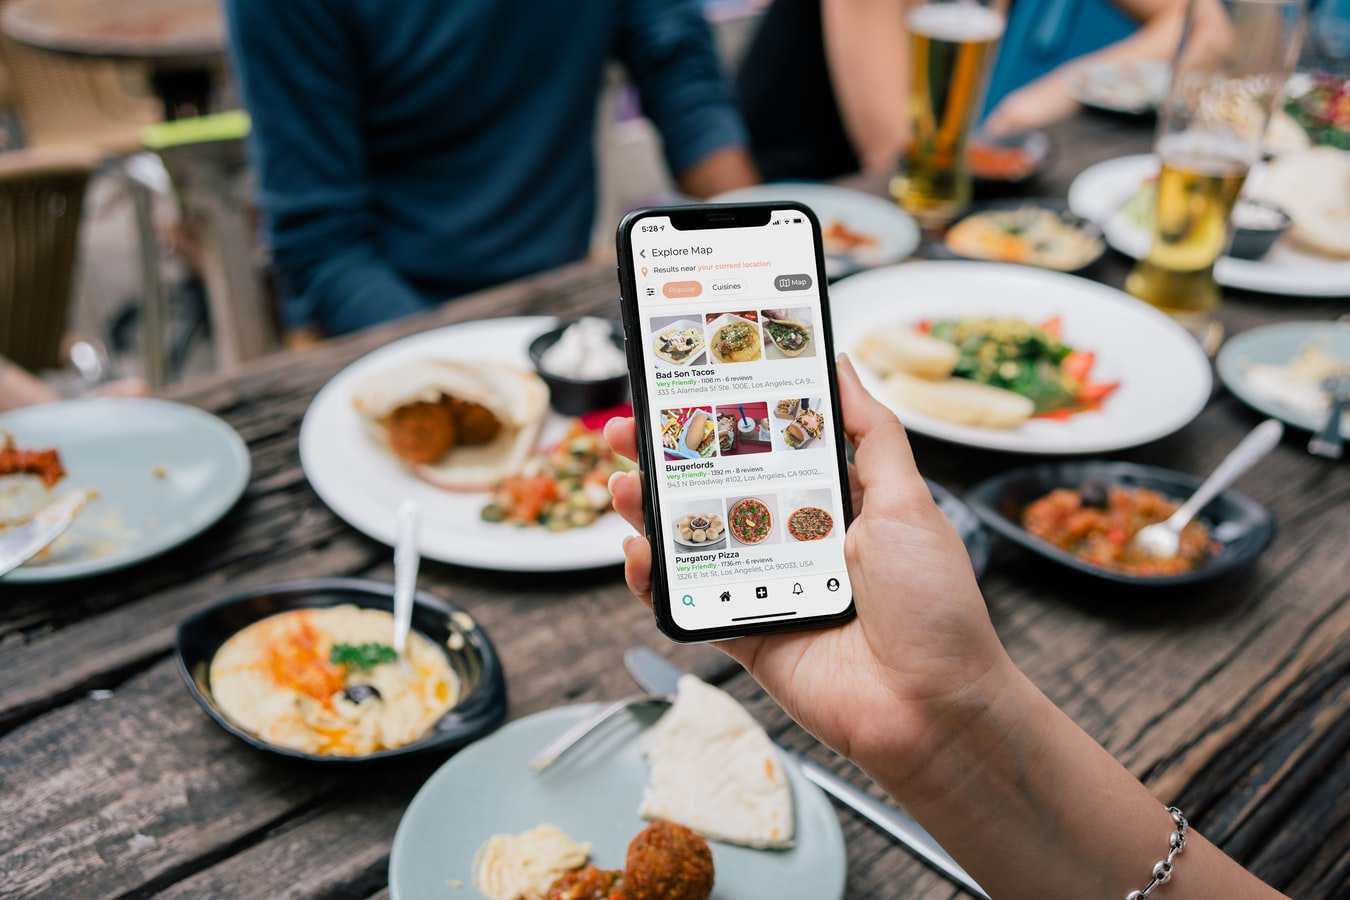 The Benefits of Using Chatbots on Your Restaurant Website